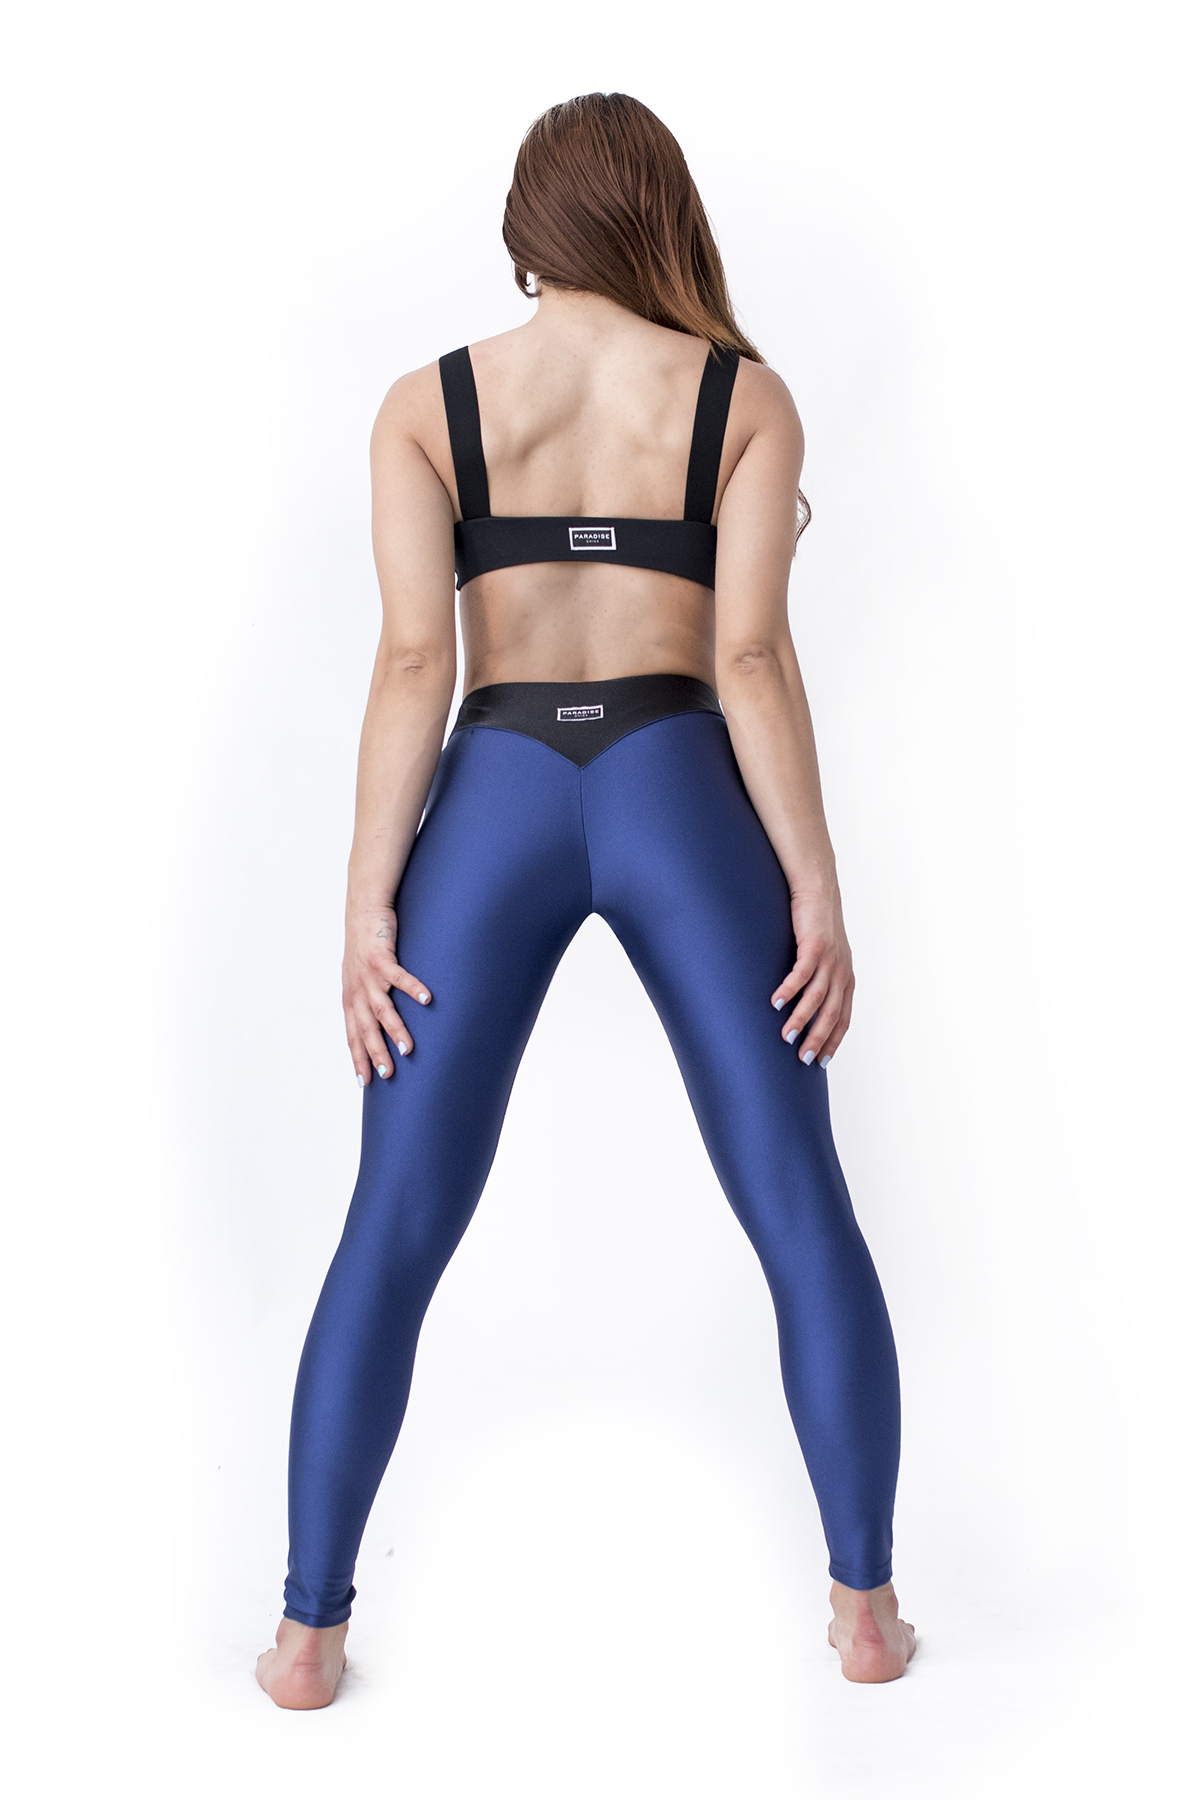 LEGGINGS_DEEP BLUE_2_1200x1800